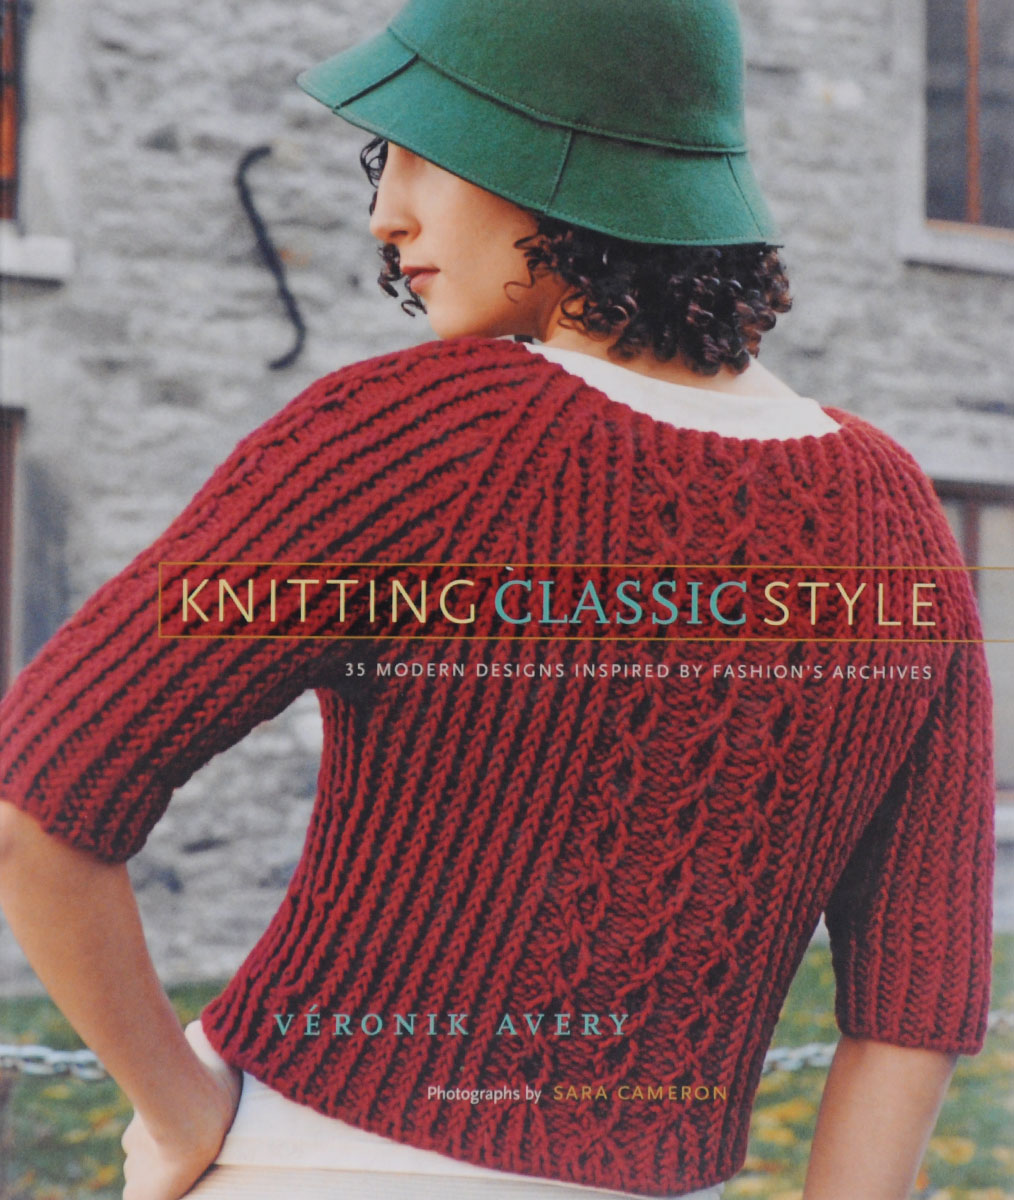 Knitting Classic Style: 35 Modern Designs Inspired by Fashion's Archives 8 mile music from and inspired by the motion picture 2 lp